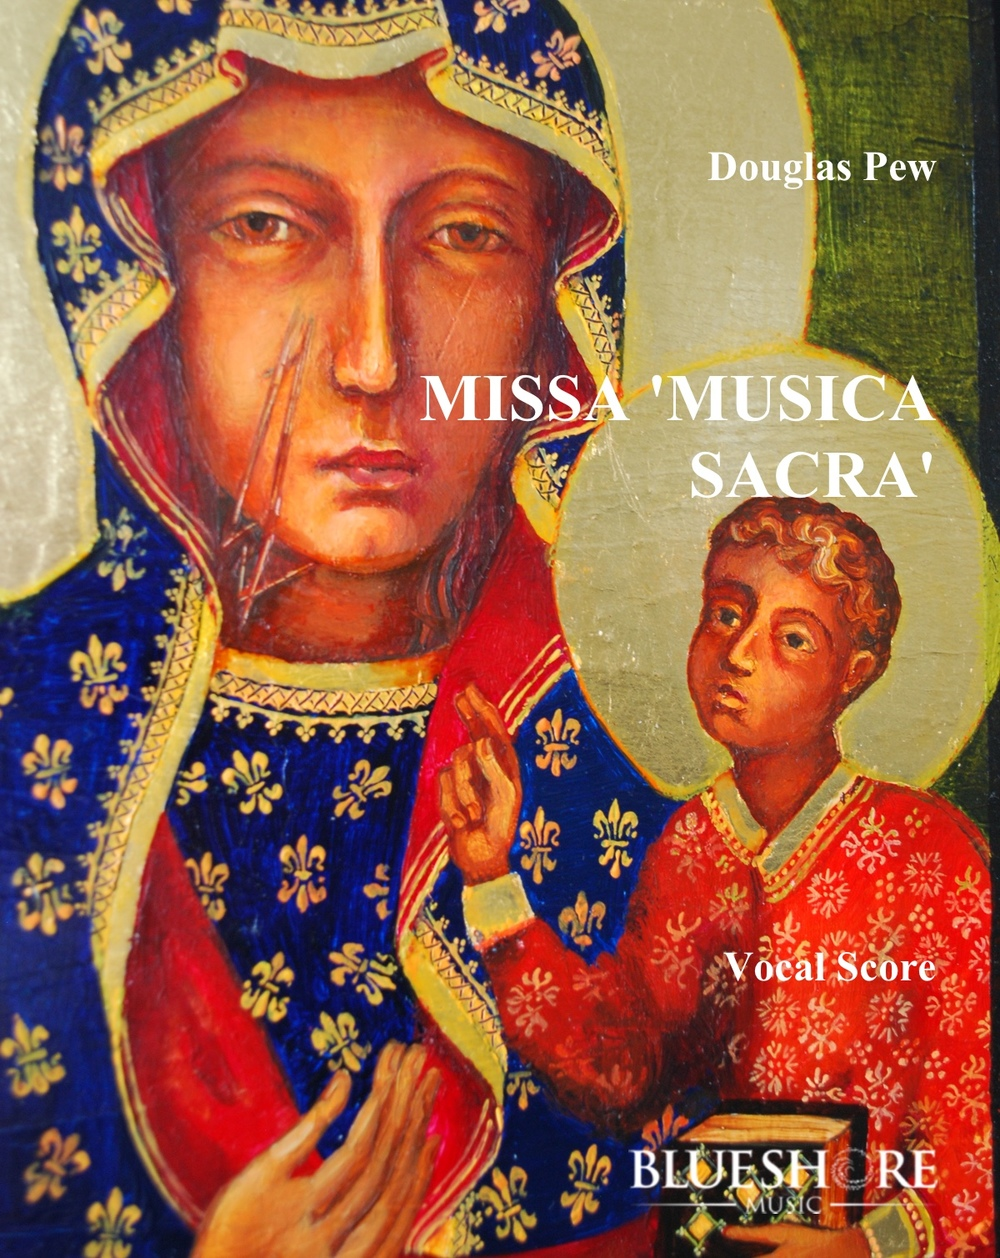 Missa 'Musica Sacra', for SATB and Organ, or Double Choir a cappella